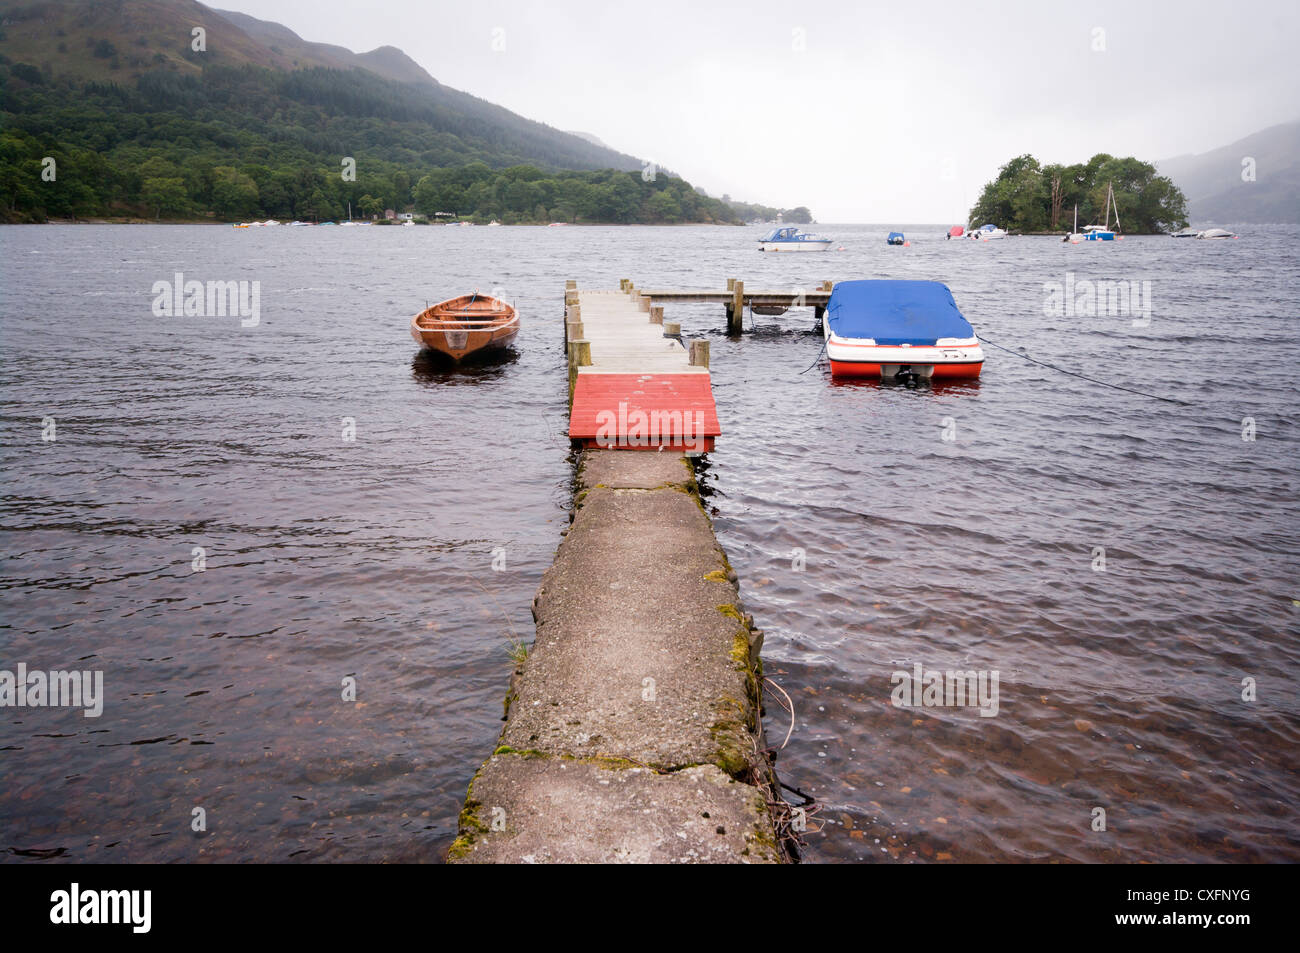 Loch Earn Seen From St Fillans Perth and Kinross Scotland - Stock Image